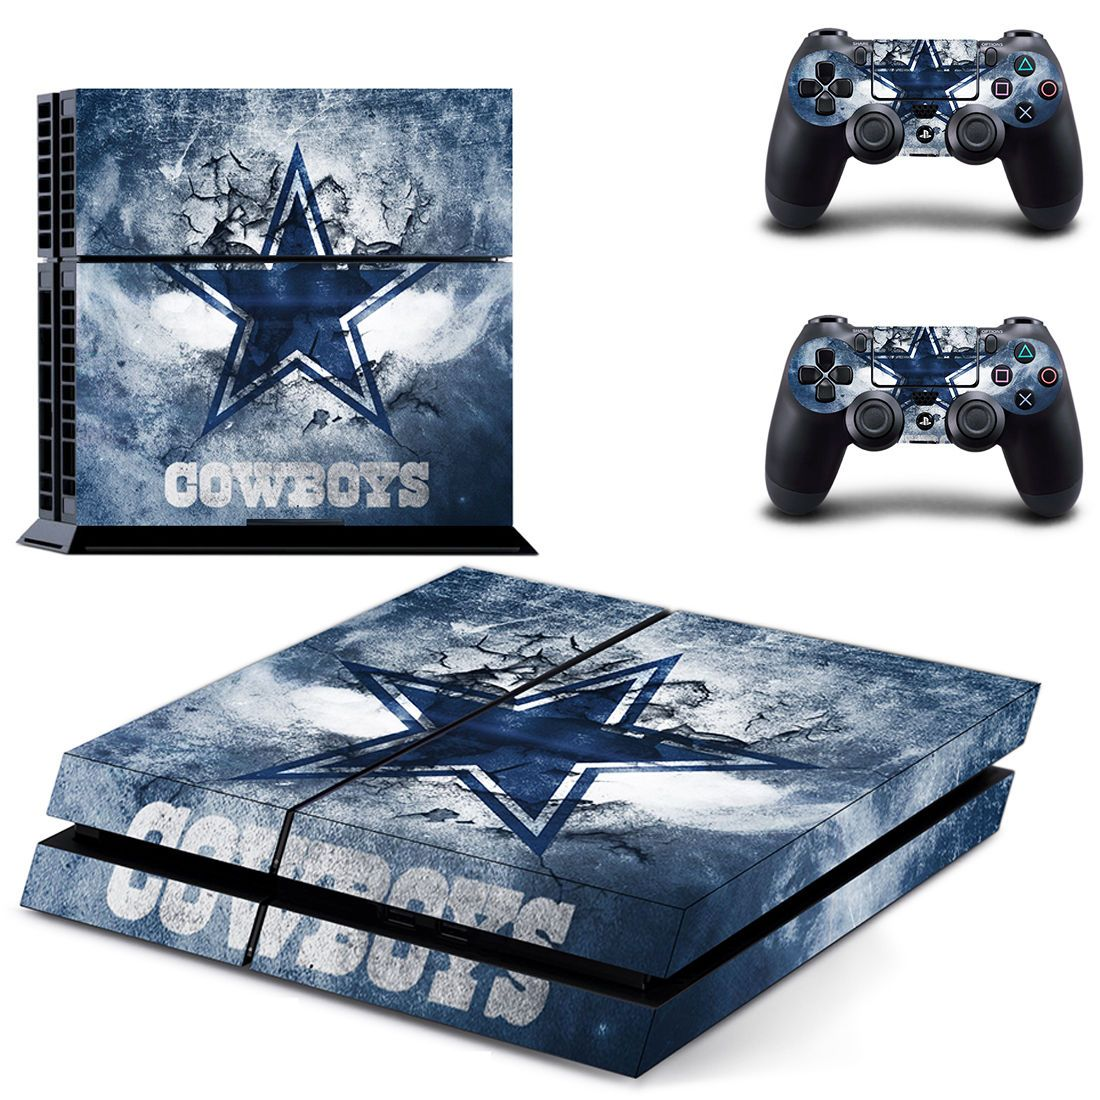 Su Dallas Cowboys Decal Sticker Skin For Playstation 4 Ps4 Console+Controllers